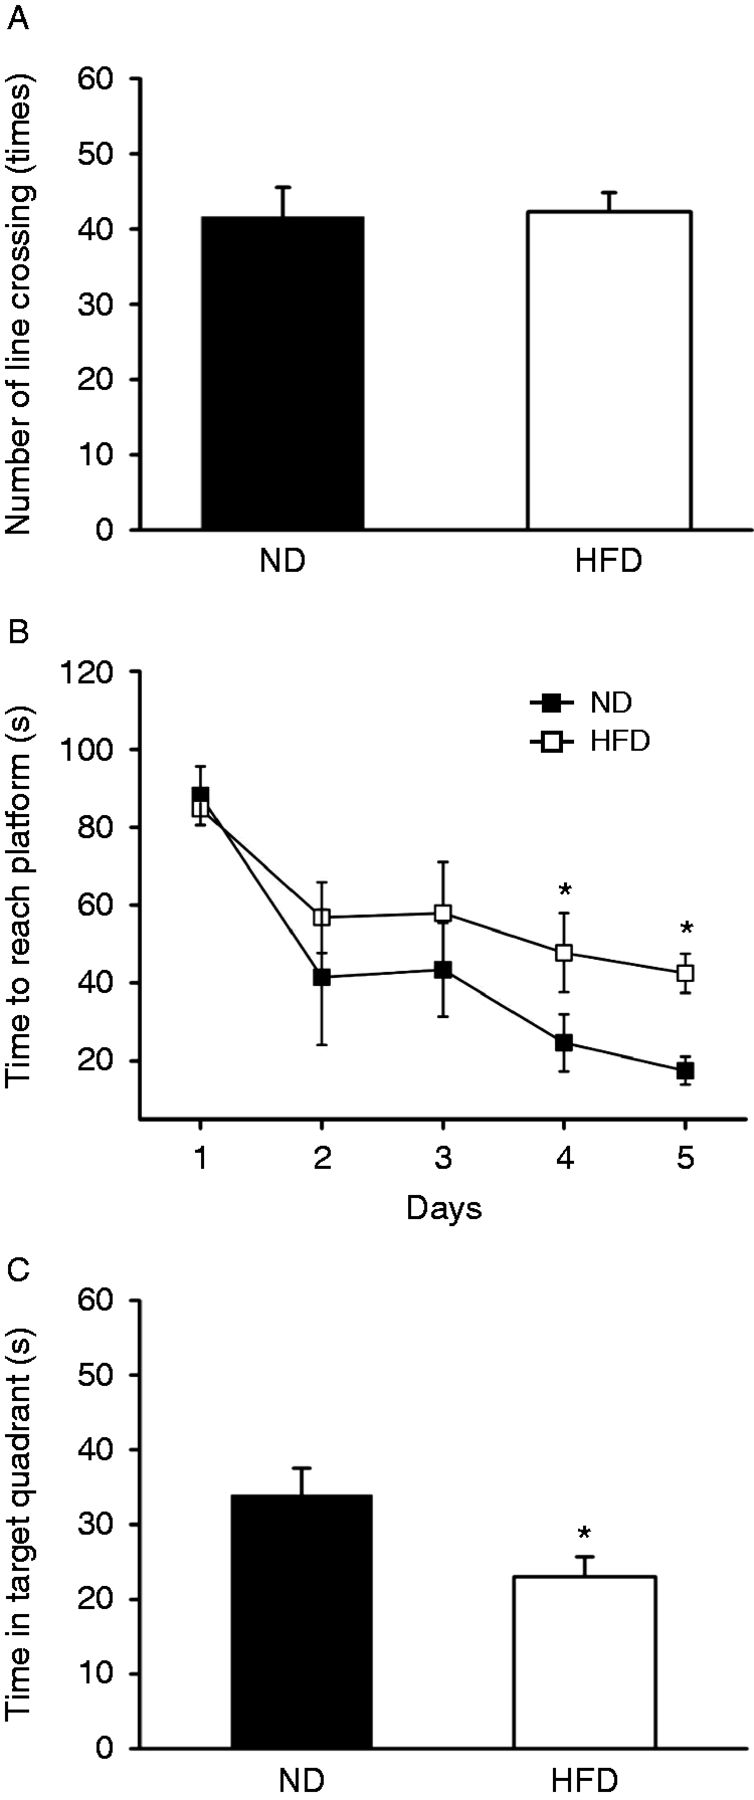 DPP-4 inhibitors improve cognition and brain mitochondrial function